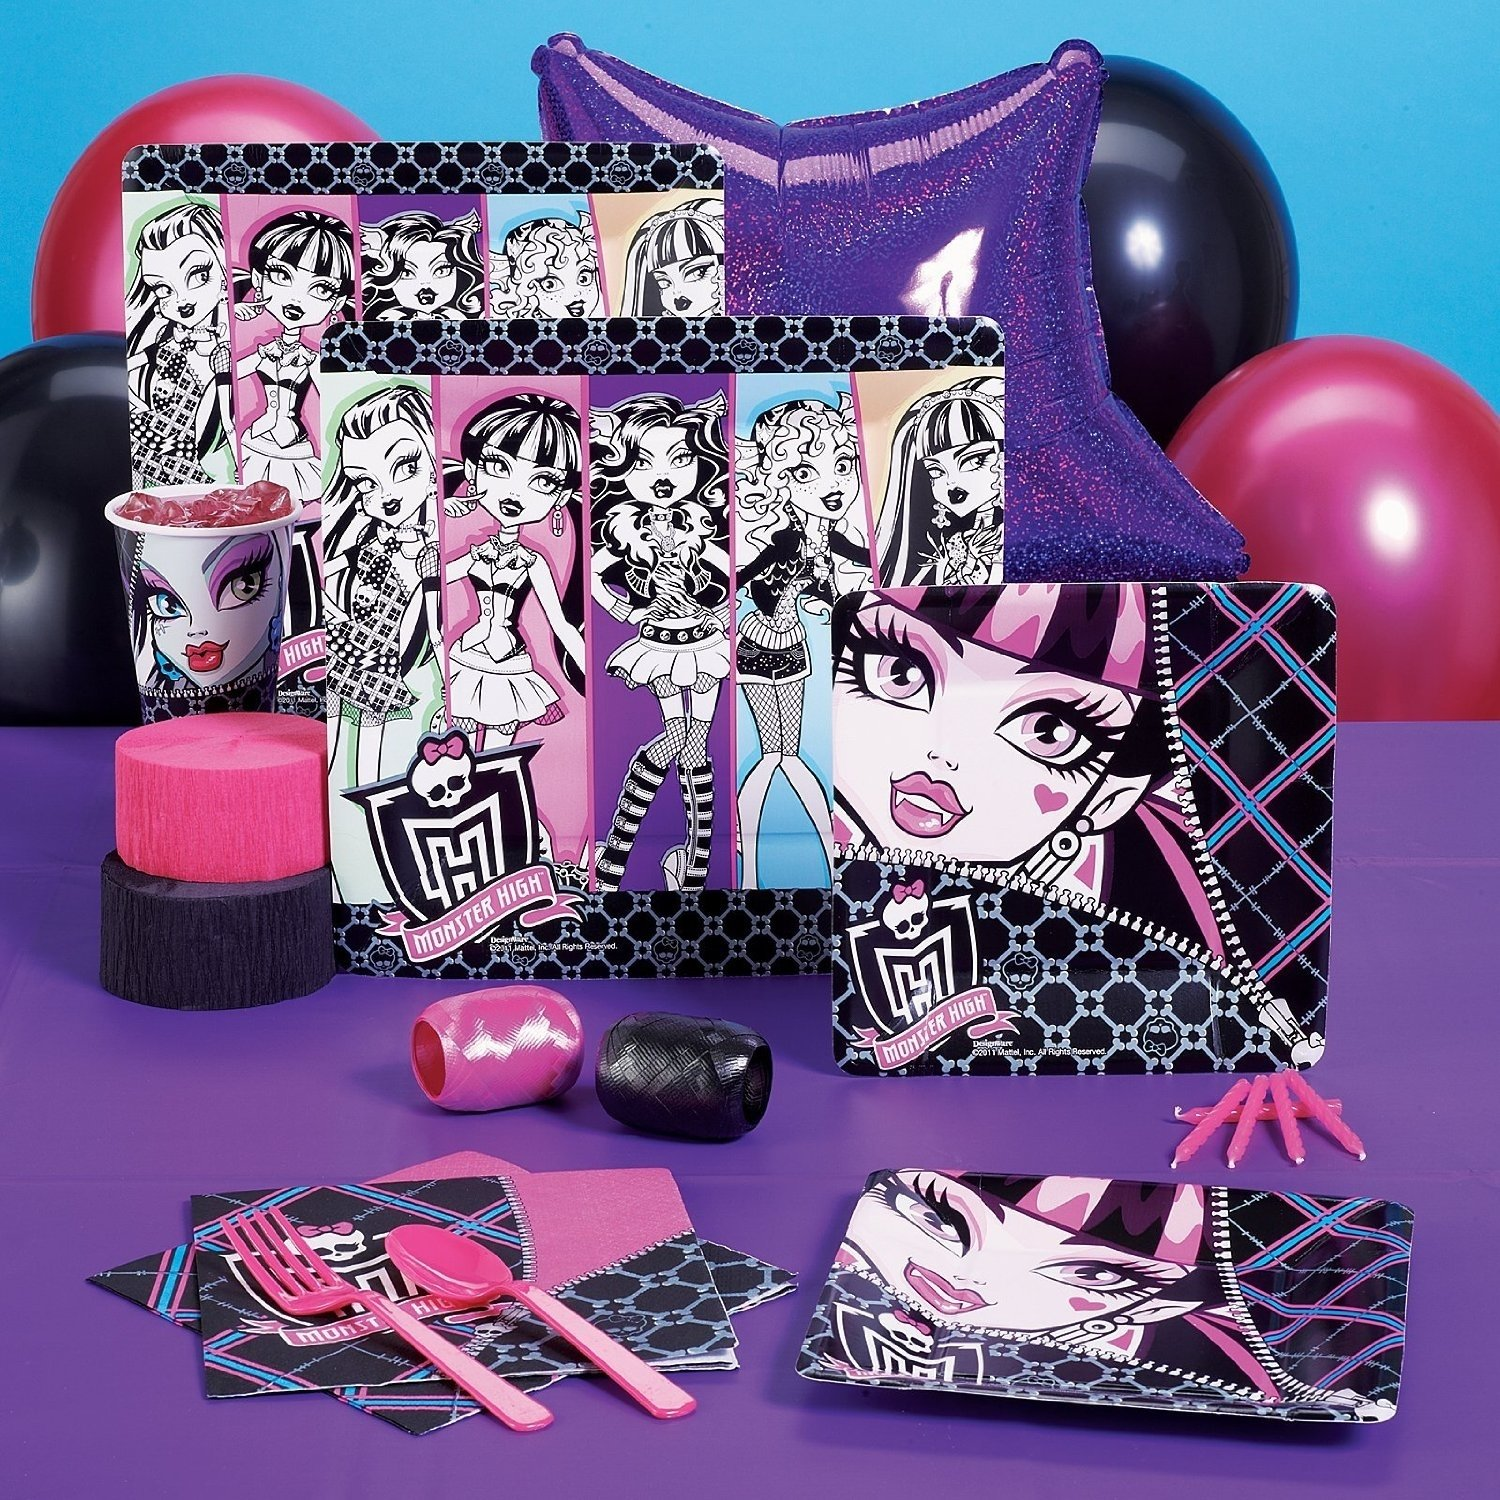 10 Nice Birthday Party Ideas For A 10 Year Old Girl 10 year old girl birthday party ideas girl birthday birthday 2 2020